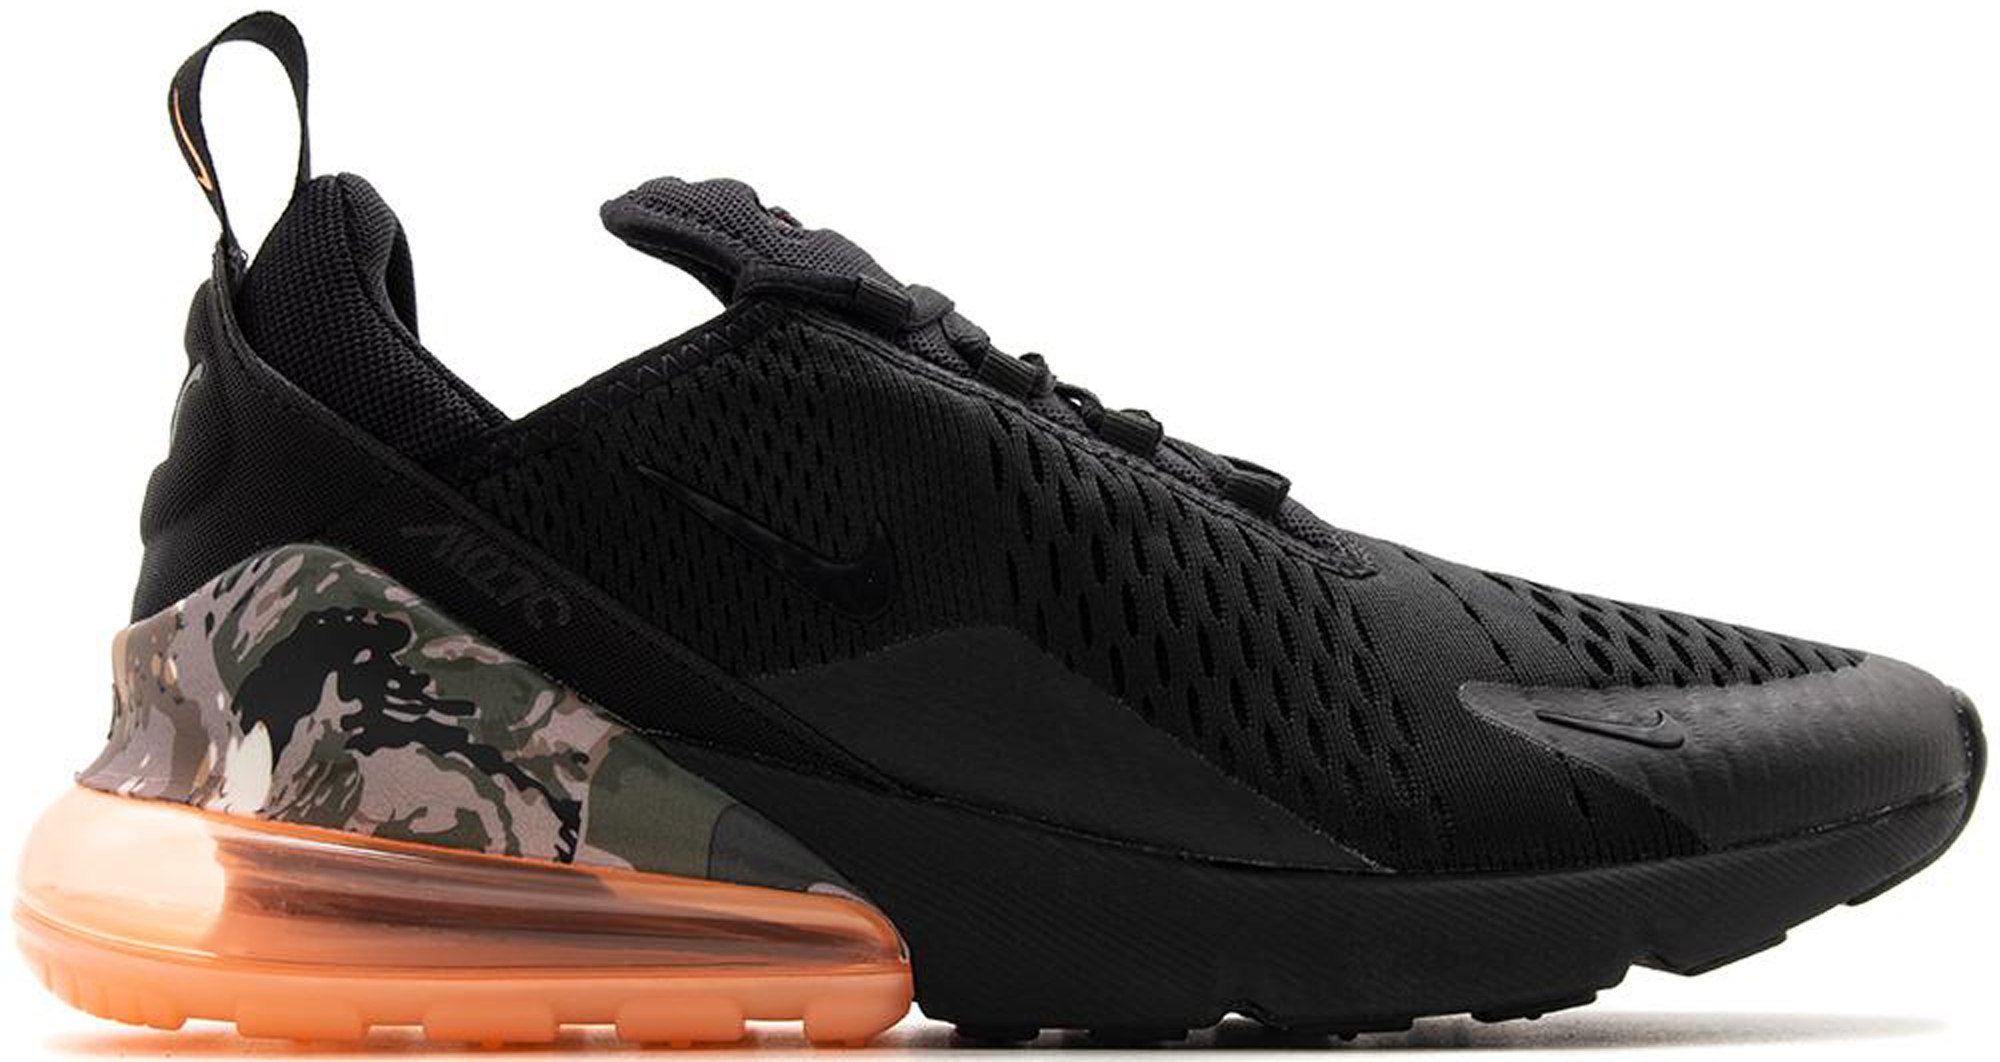 nike air max 270 camo sunset. Black Bedroom Furniture Sets. Home Design Ideas